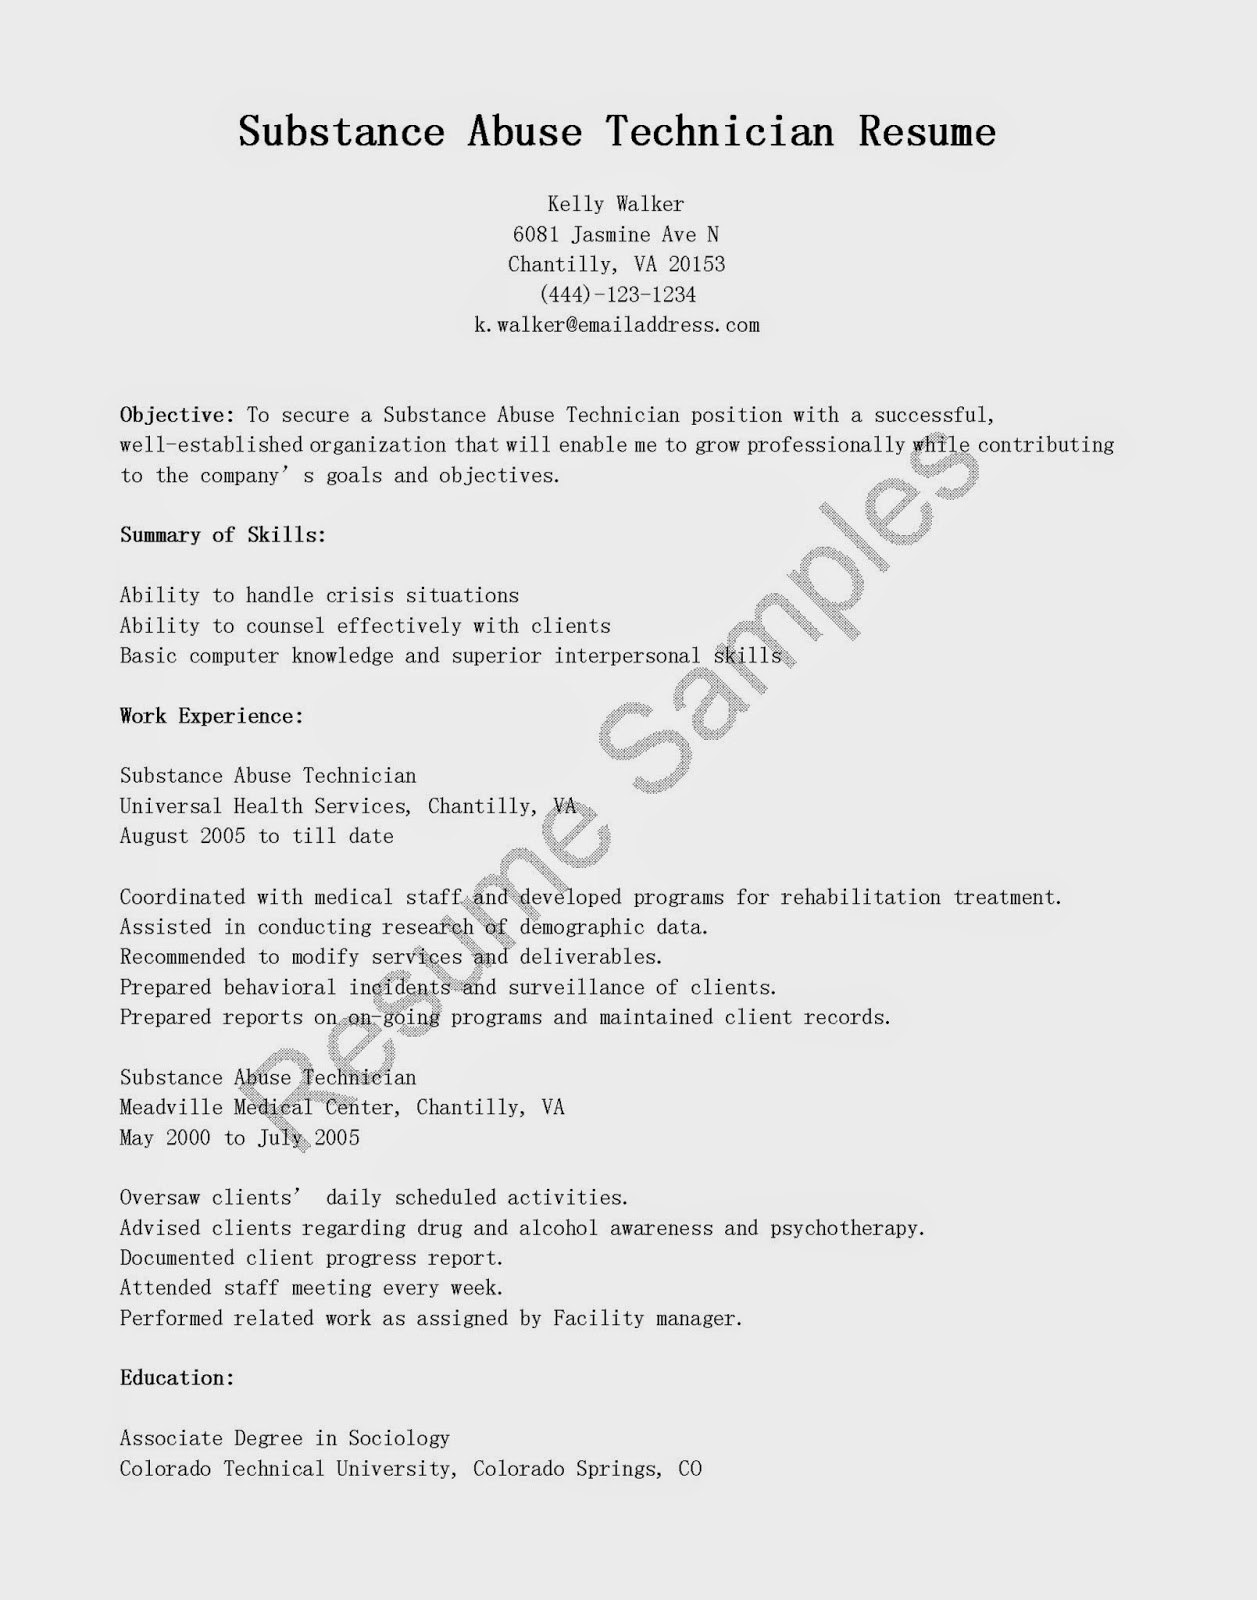 resume sample for camp counselor  resume maker create  also resume sample for camp counselor substitute teacher resume sample examplesample camp counselor resume resume student